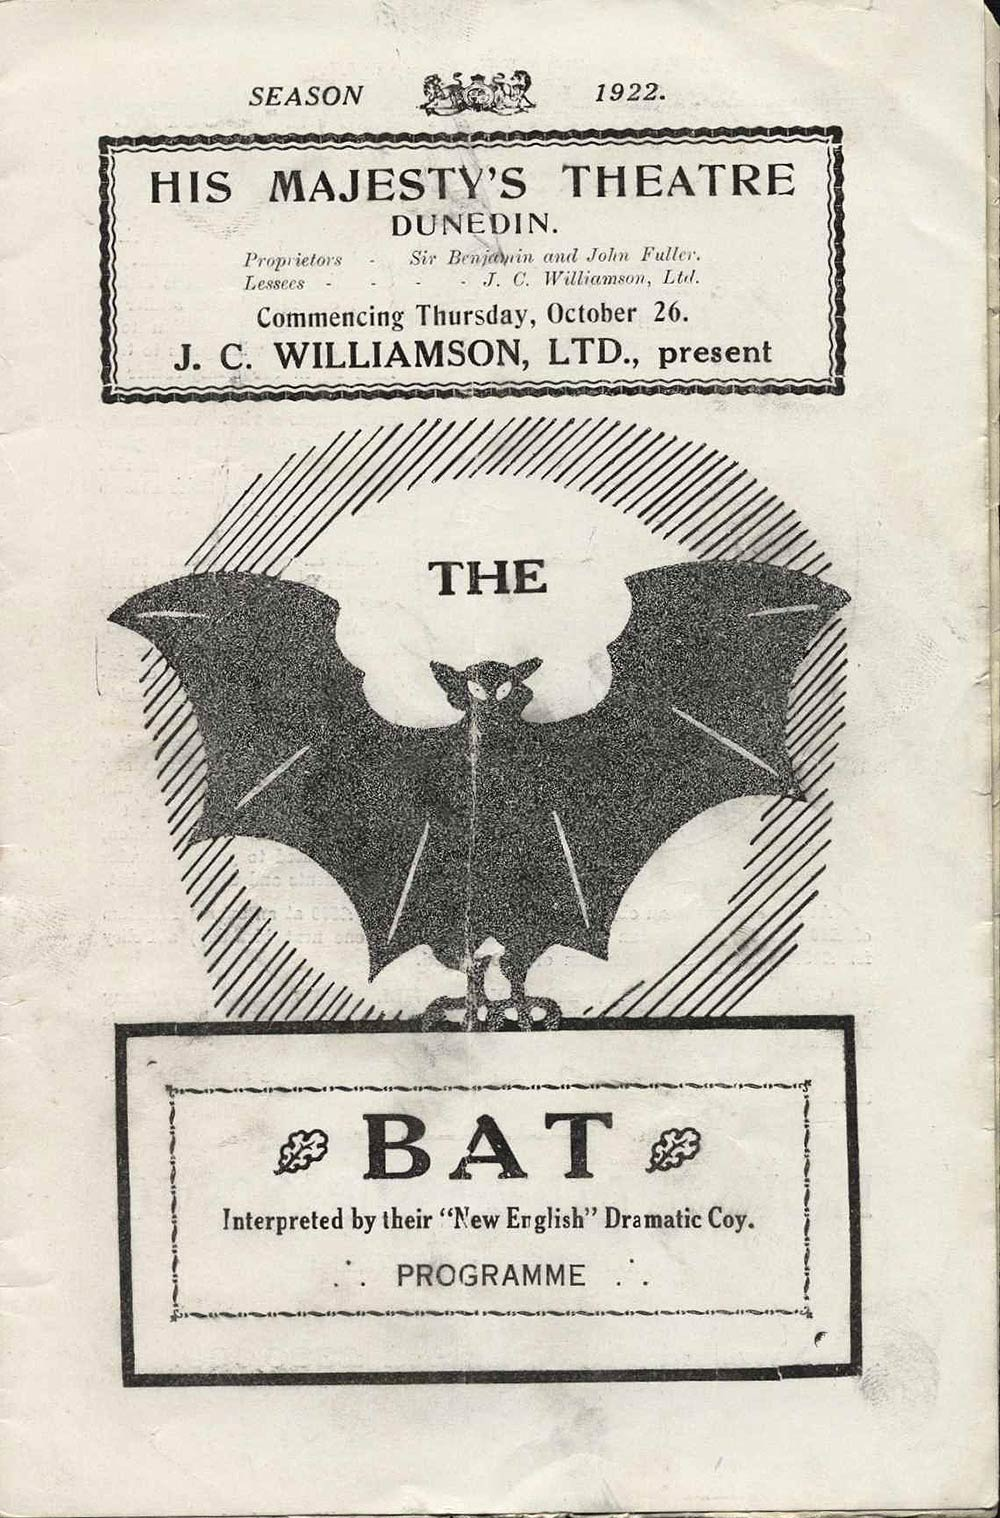 <em>The bat</em>. Mary Roberts Rinehart and Avery Hopwood. (J.C. Williamson Limited's New English Dramatic Co.). His Majesty's Theatre, Dunedin, Oct. 26, 1922.